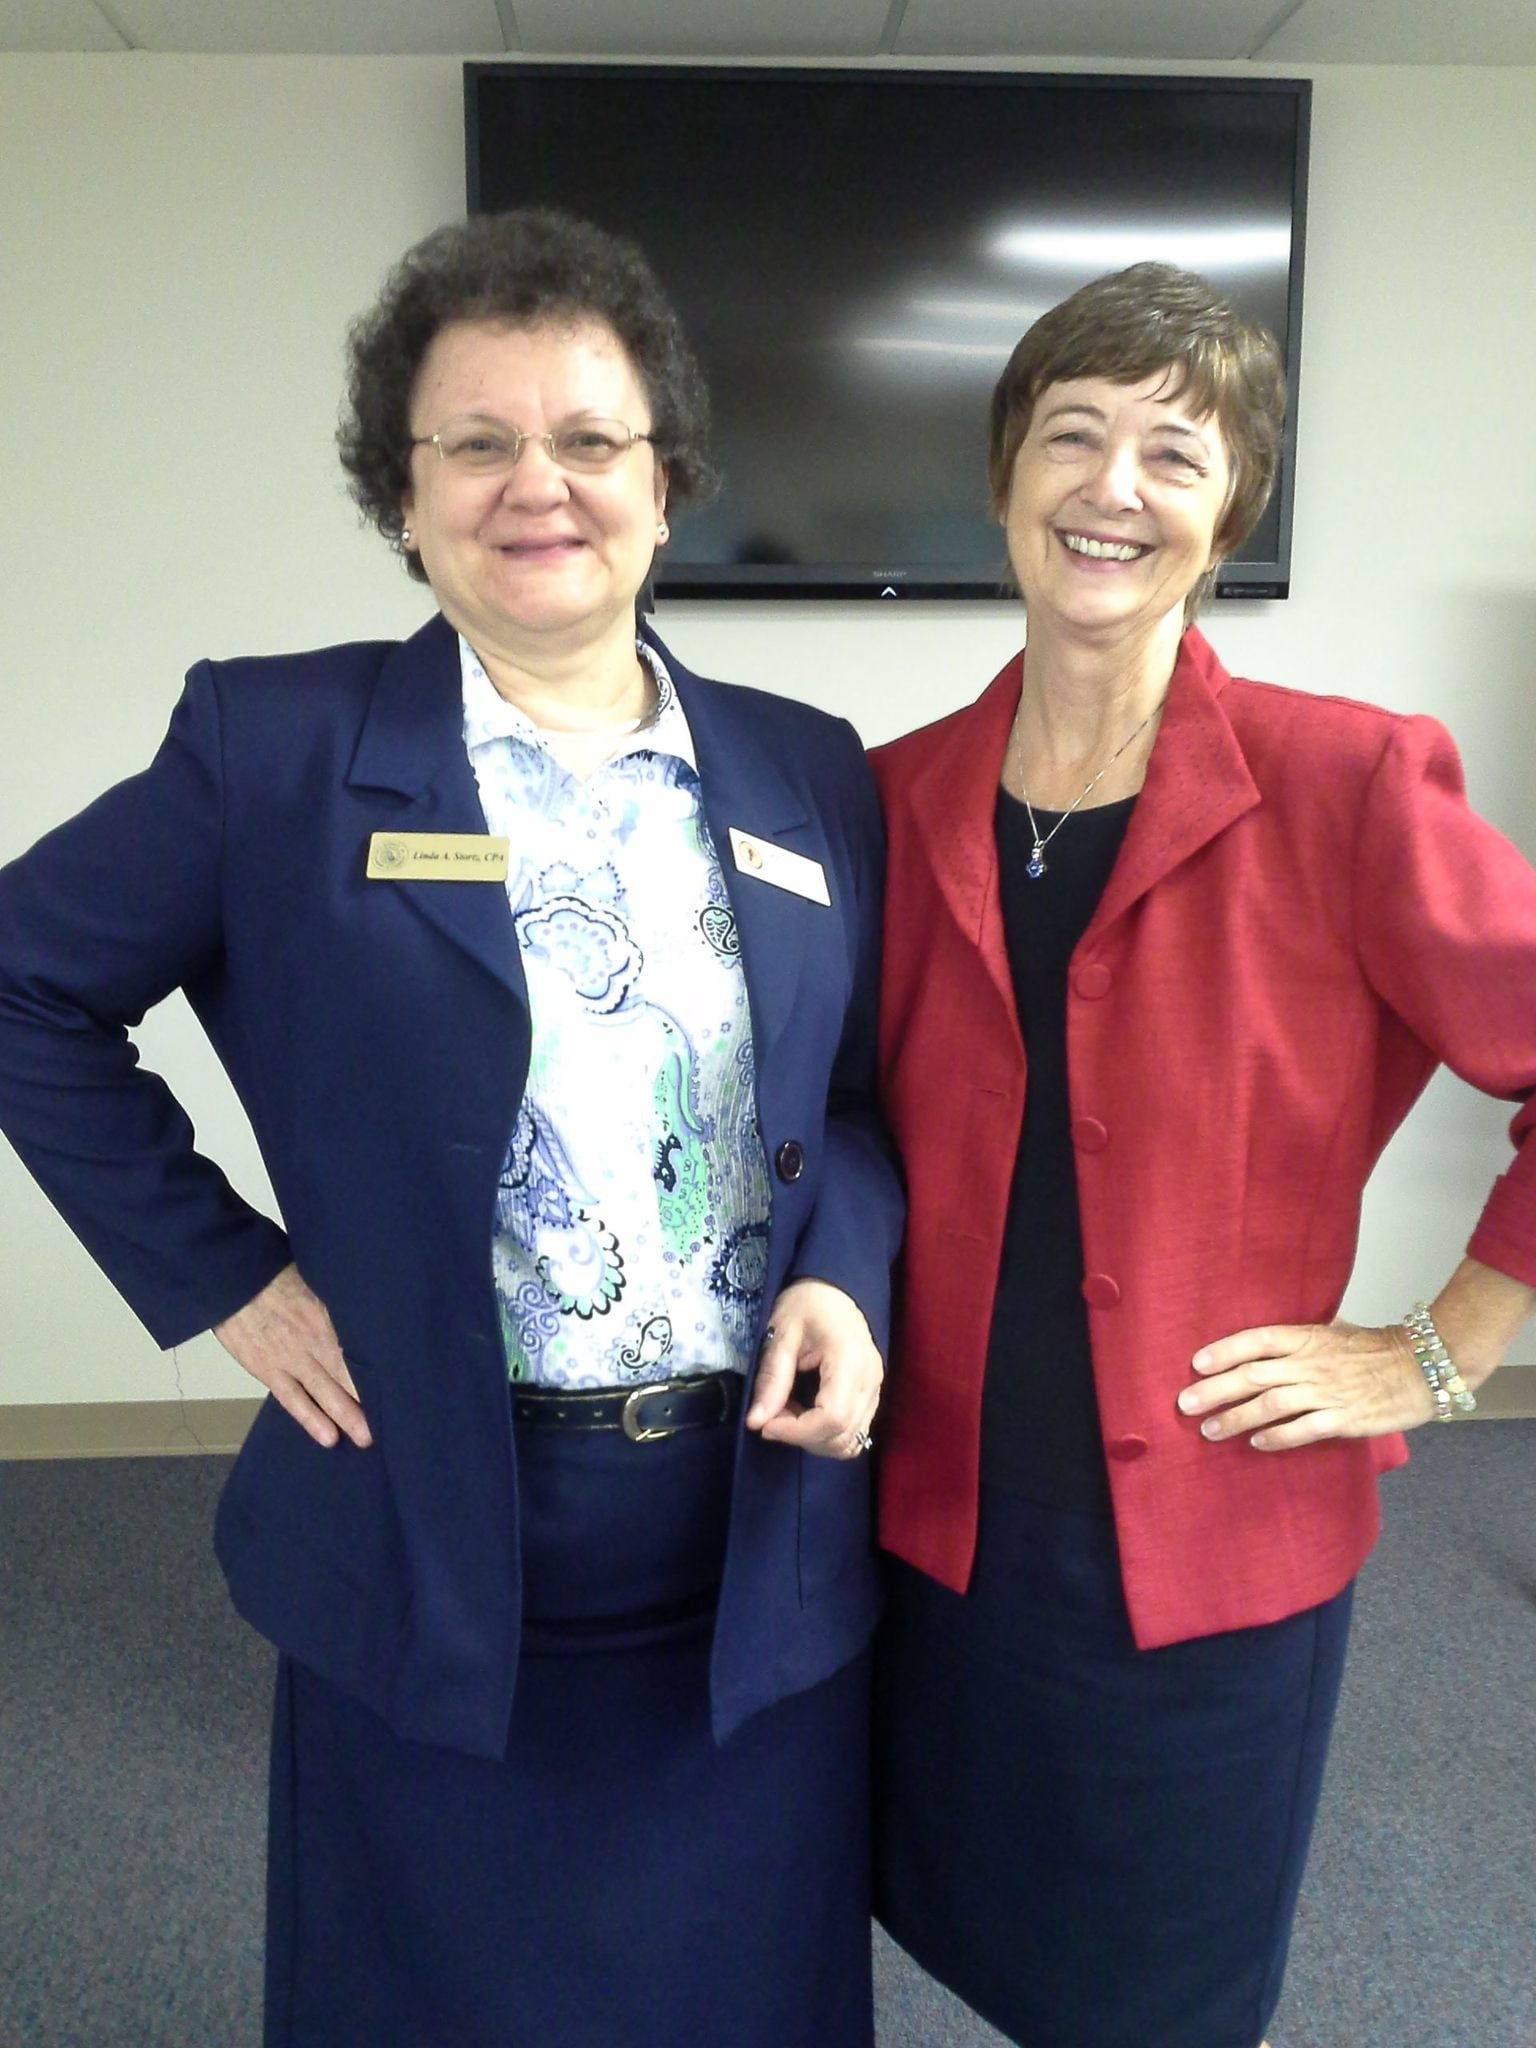 Linda Stortz CPA with Kathy Perry